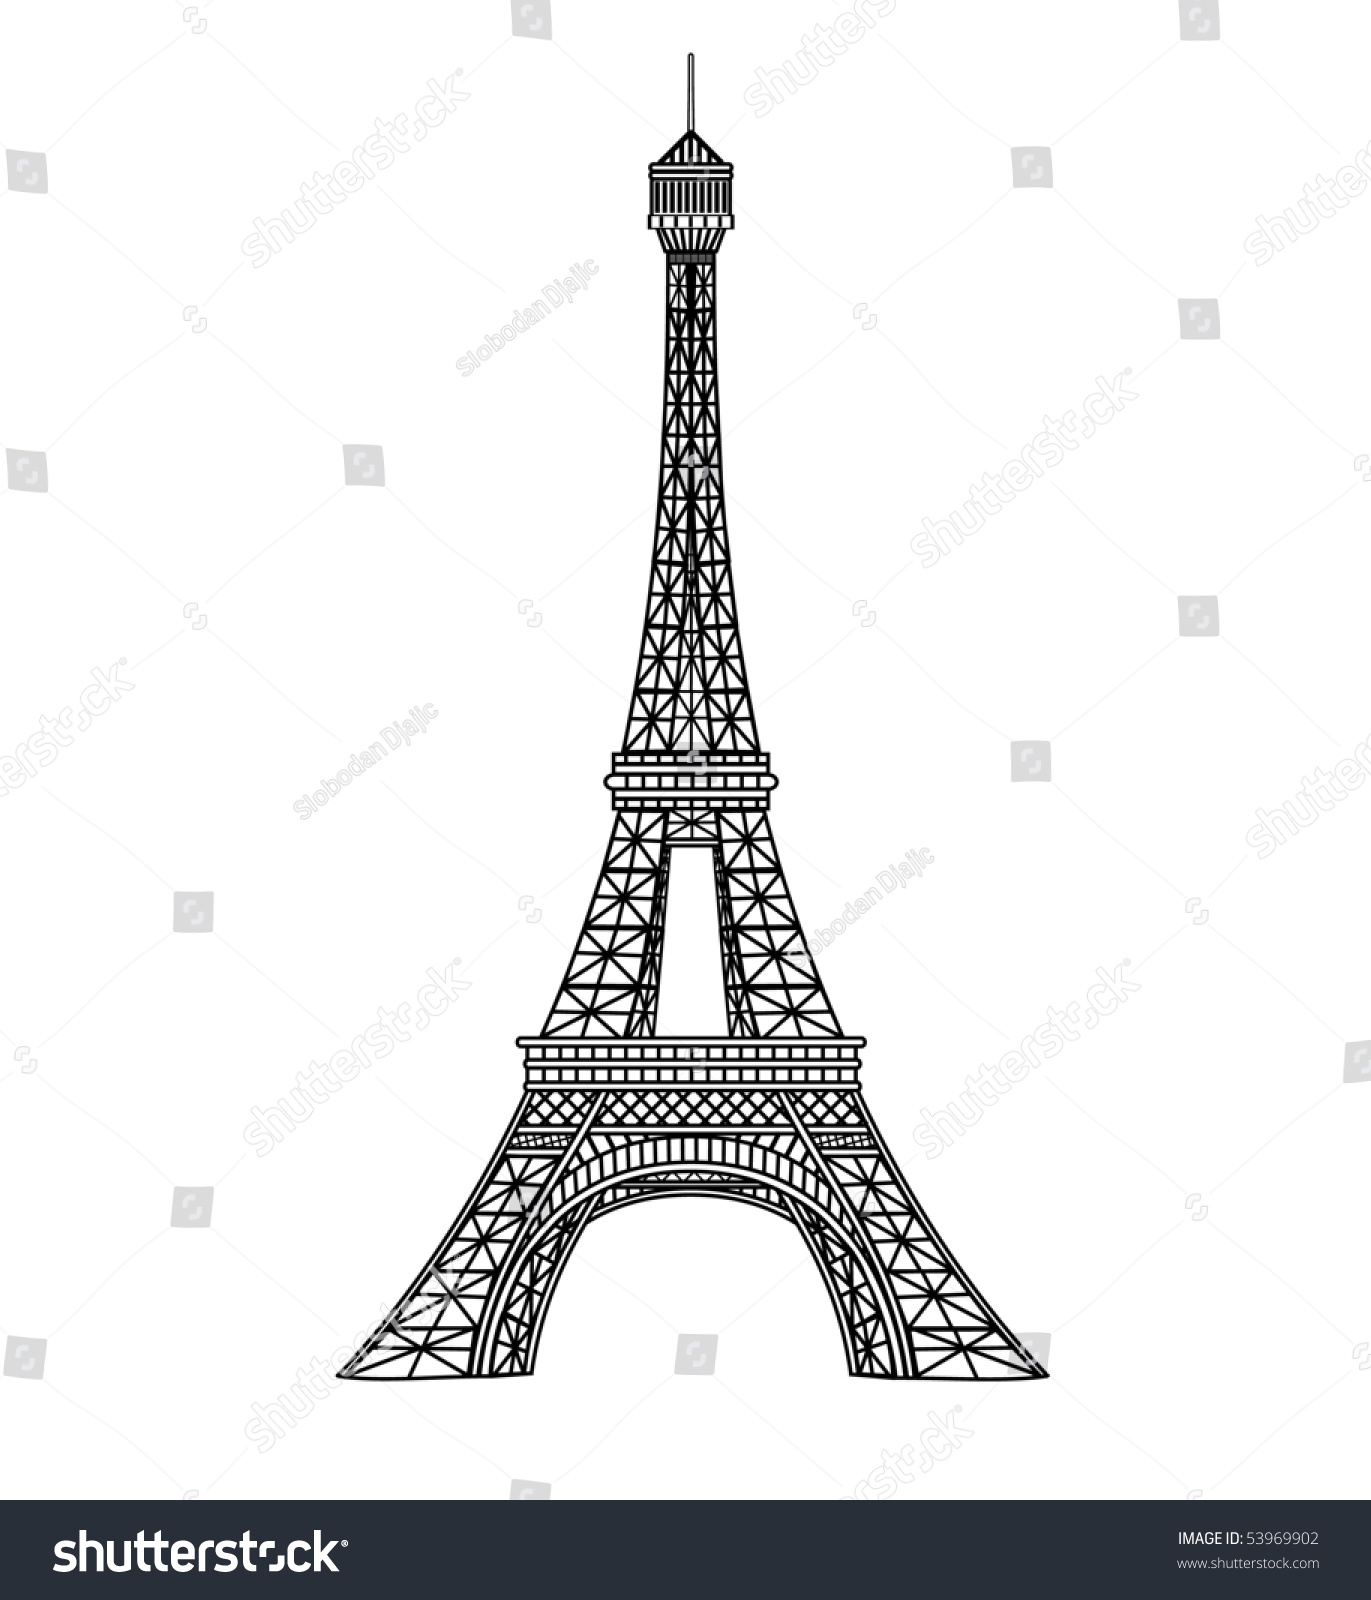 Eiffel tower vector illustration stock vector royalty free eiffel tower vector illustration thecheapjerseys Gallery